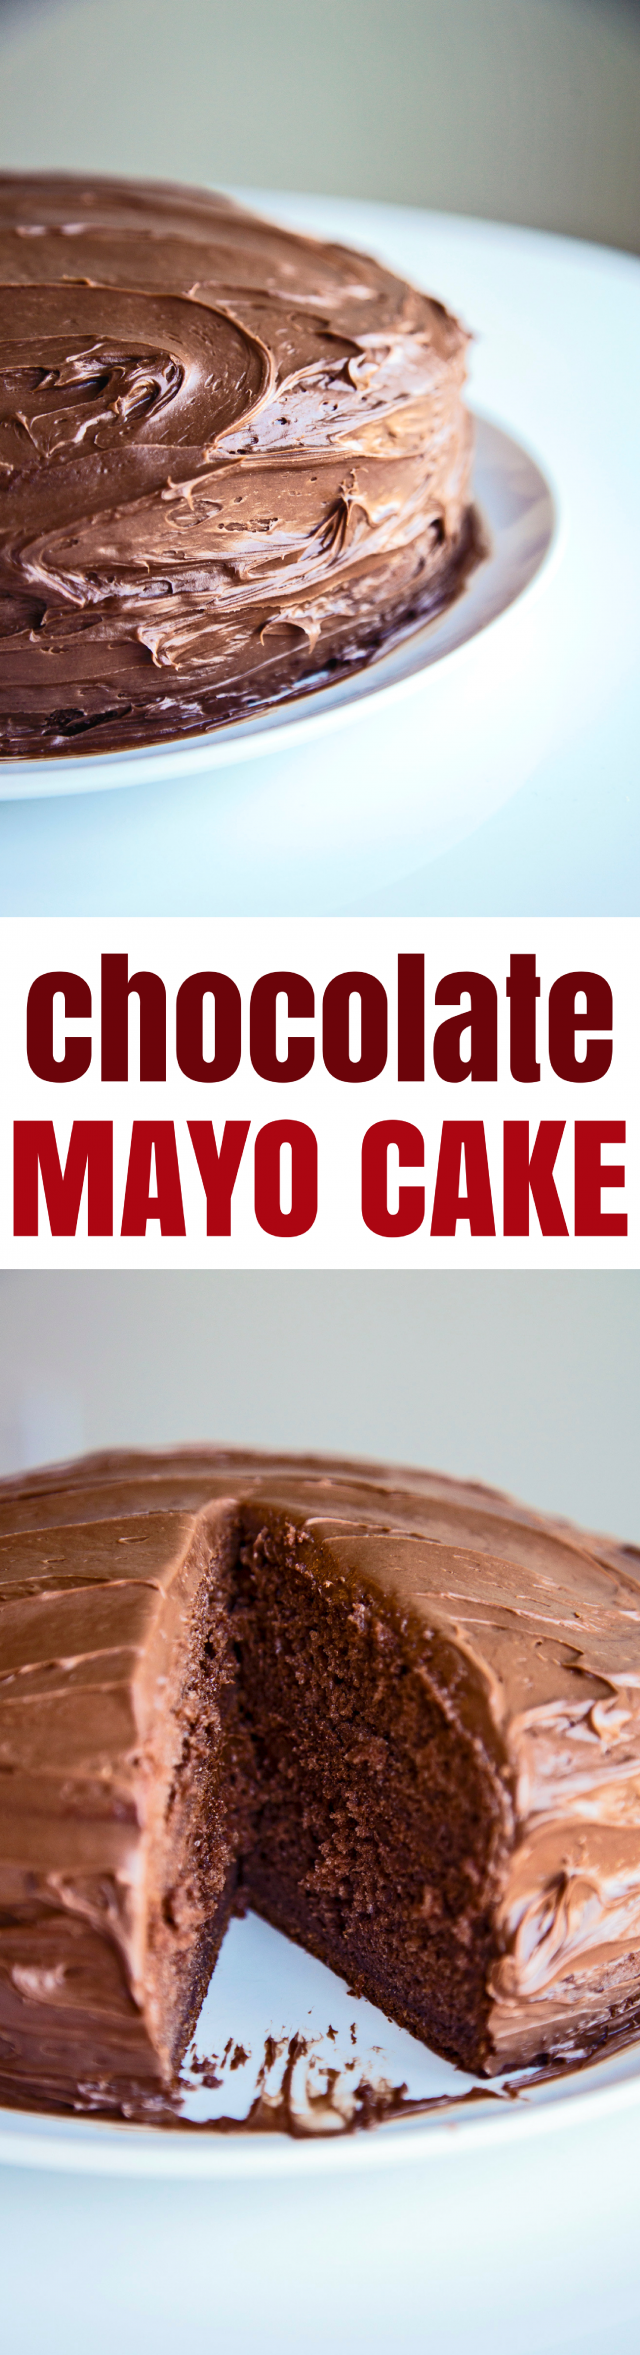 Super Moist Chocolate Mayo Cake Recipe You might be surprised by the secret ingredient that I used in this Super Moist Chocolate Cake recipe I have for you today - mayonnaise!